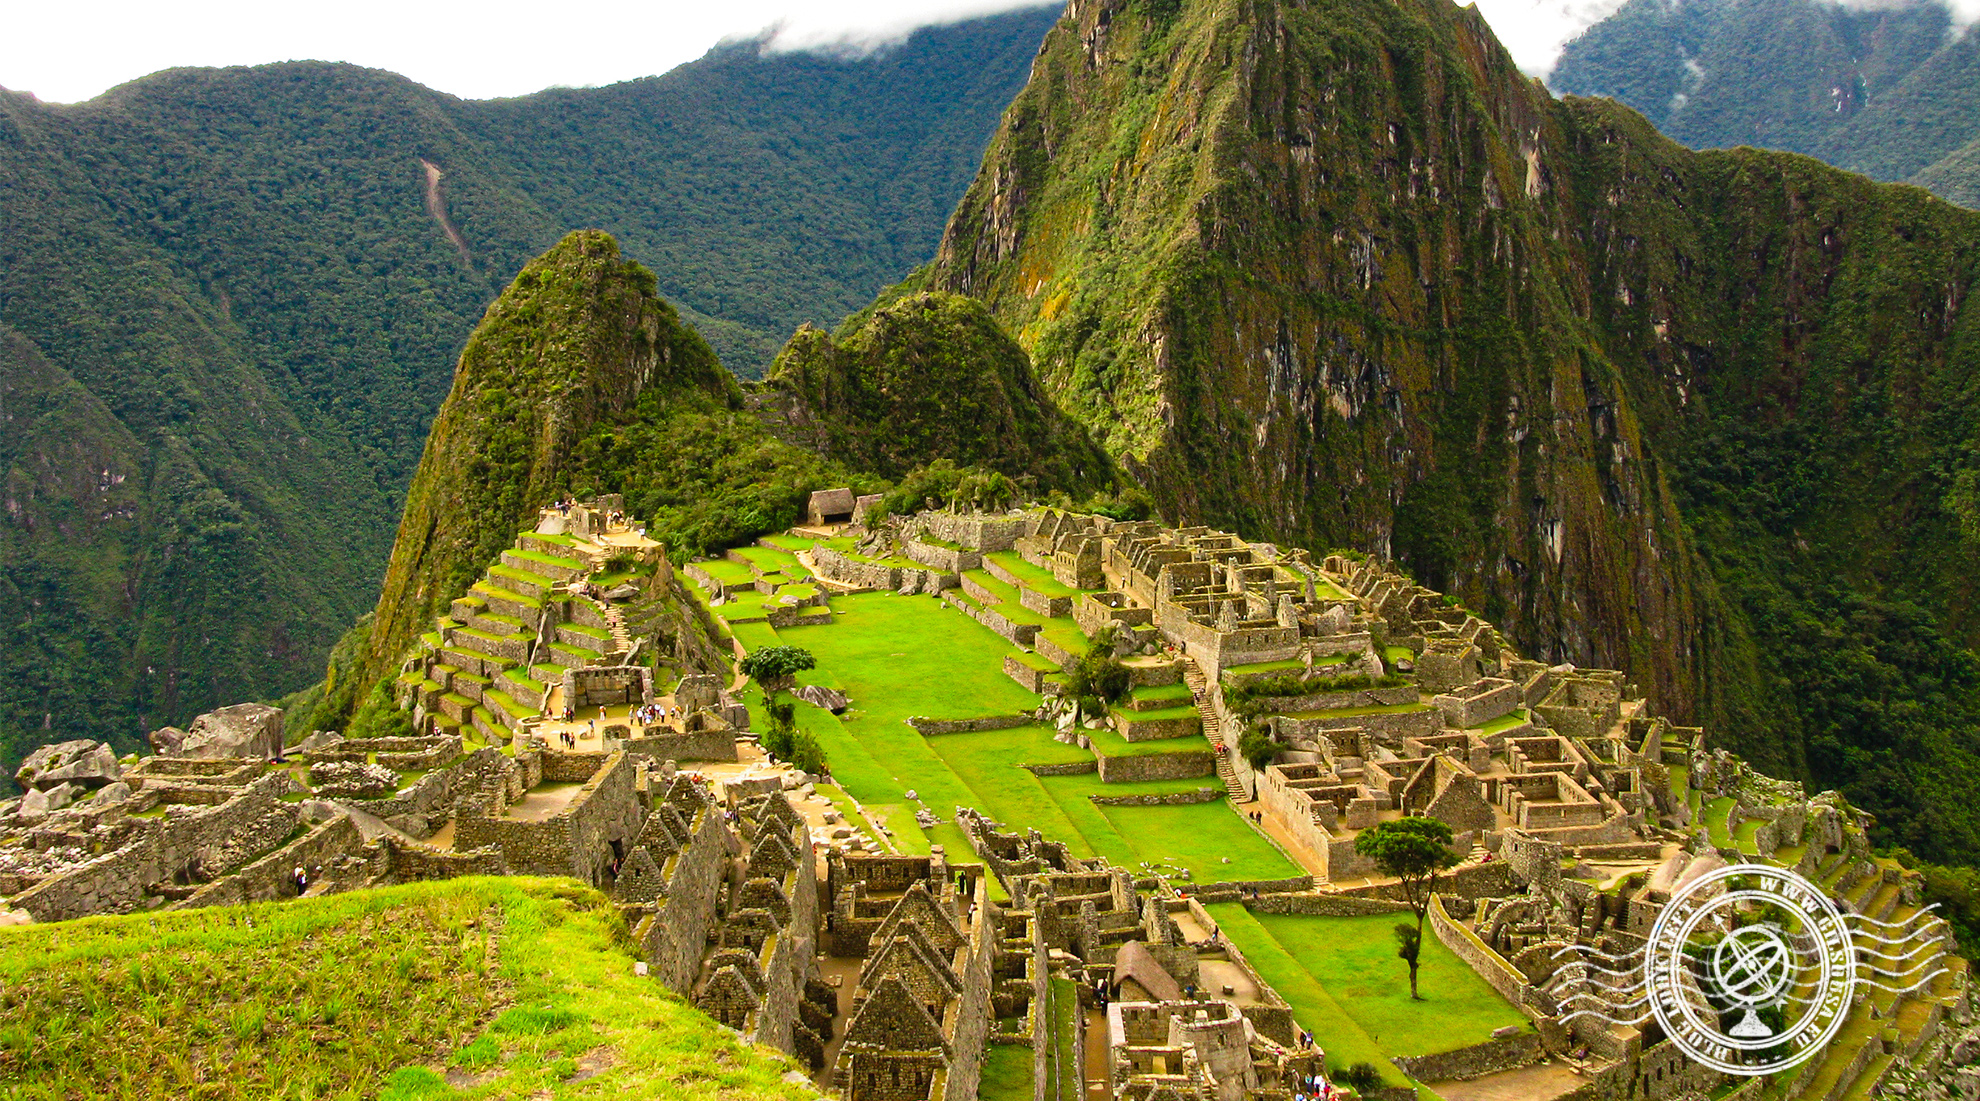 Classical view of Machu Picchu and Huayna Picchu